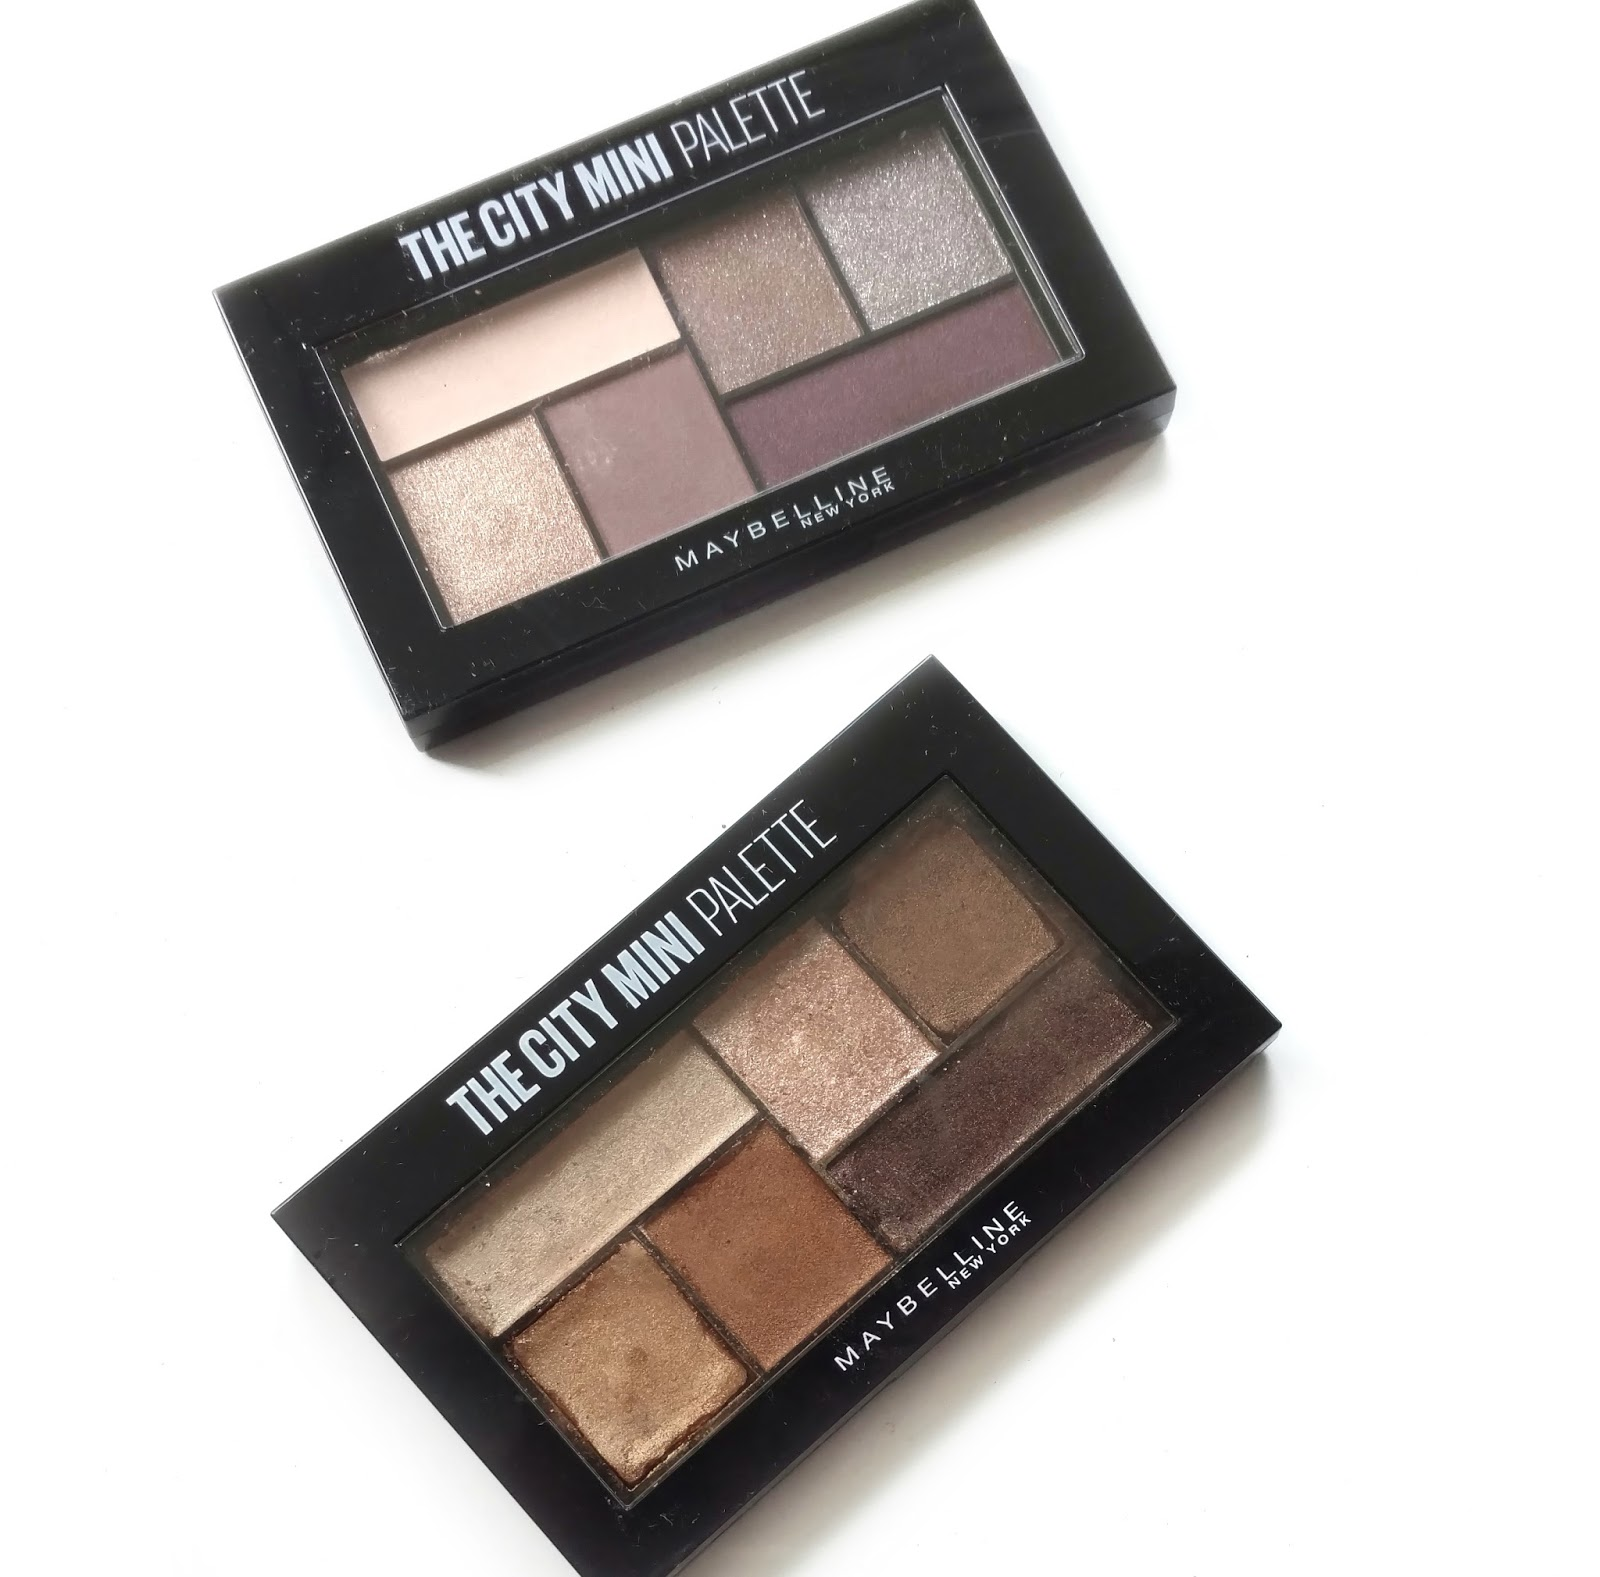 Maybelline City Mini Eyeshadow Palette Review Swatches Beauddiction